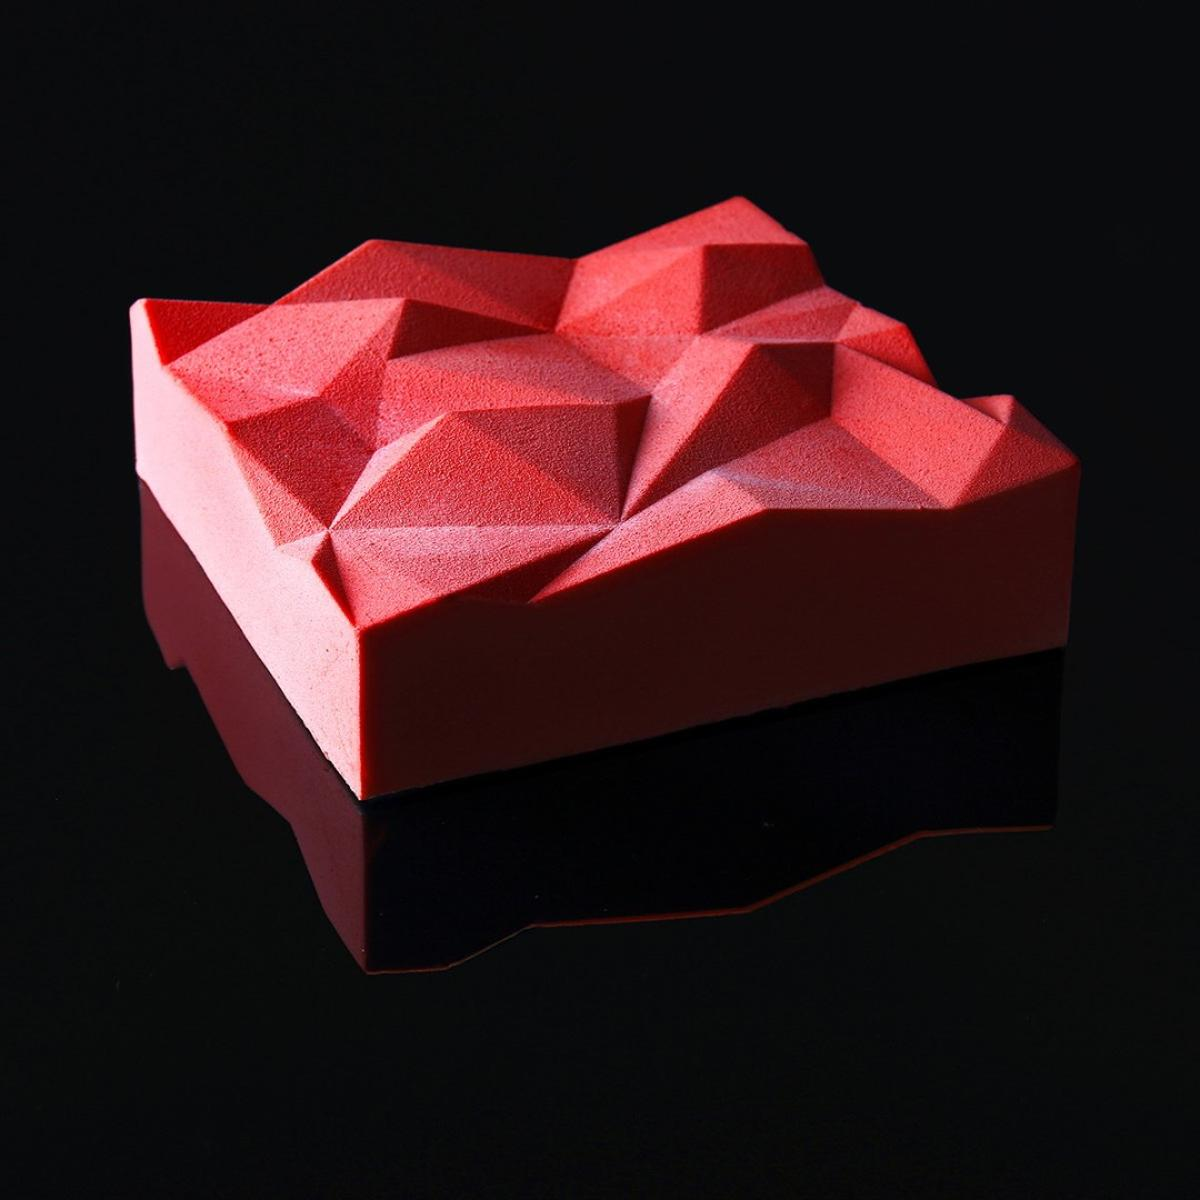 These 3D-printed cake moulds offer strange and geometric edible delights